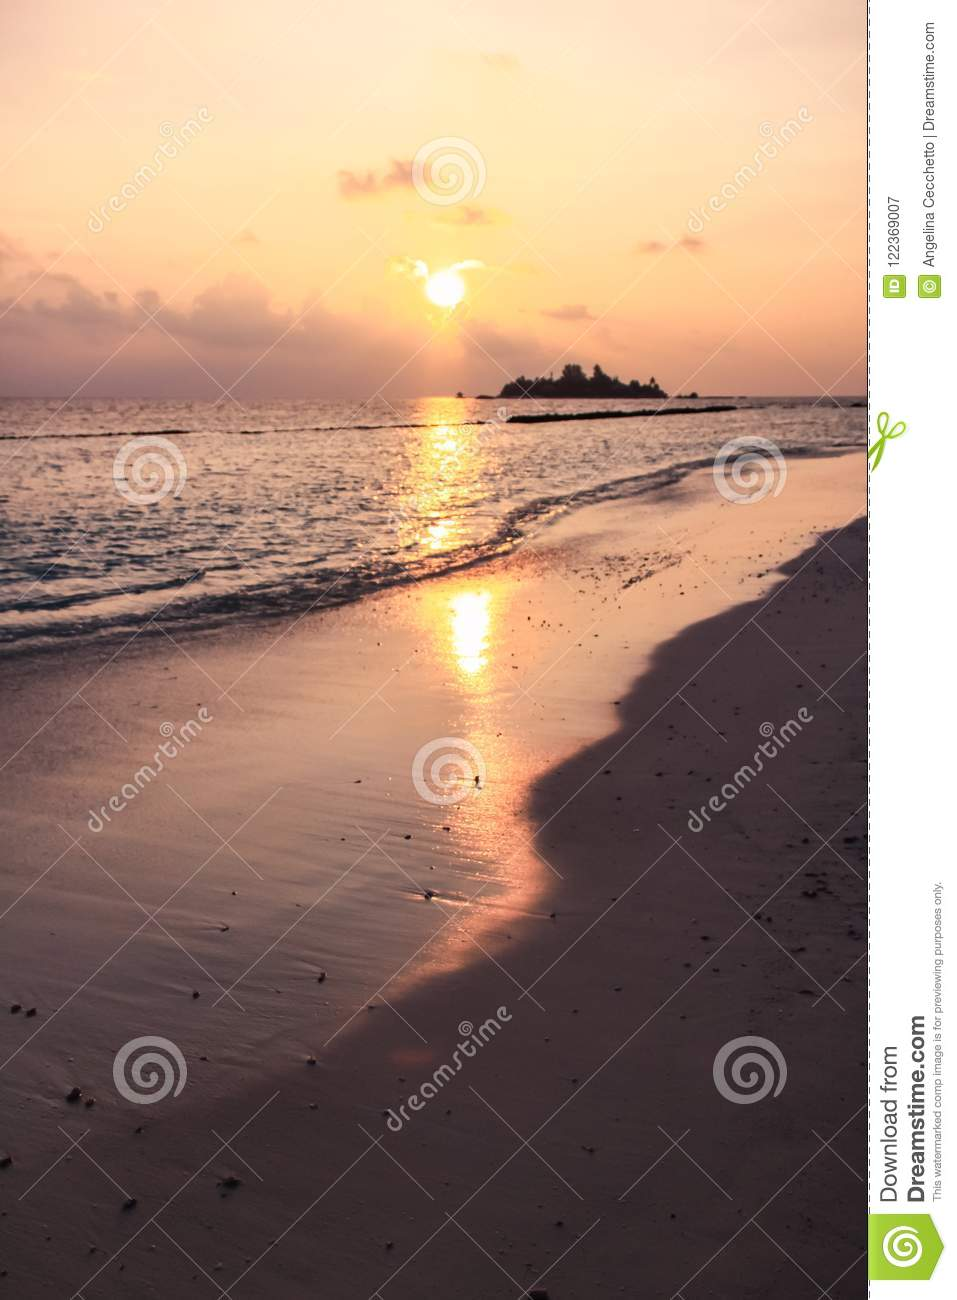 Sunset over Maldives Island Beach, Island and Pacific Ocean